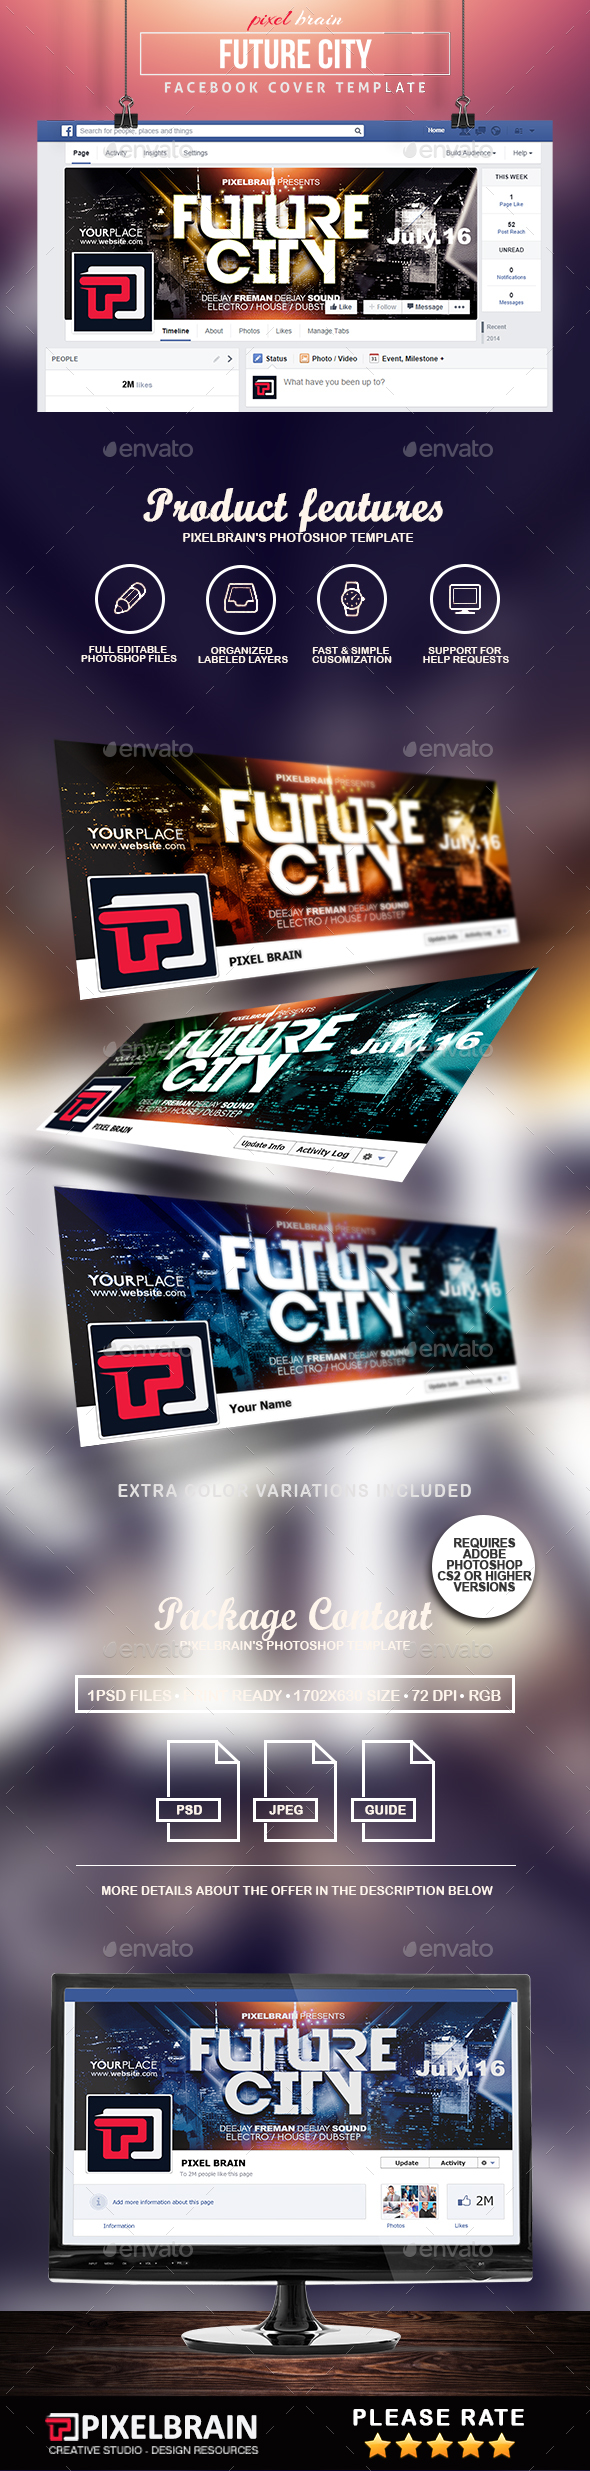 Future City Facebook Cover Template - Facebook Timeline Covers Social Media